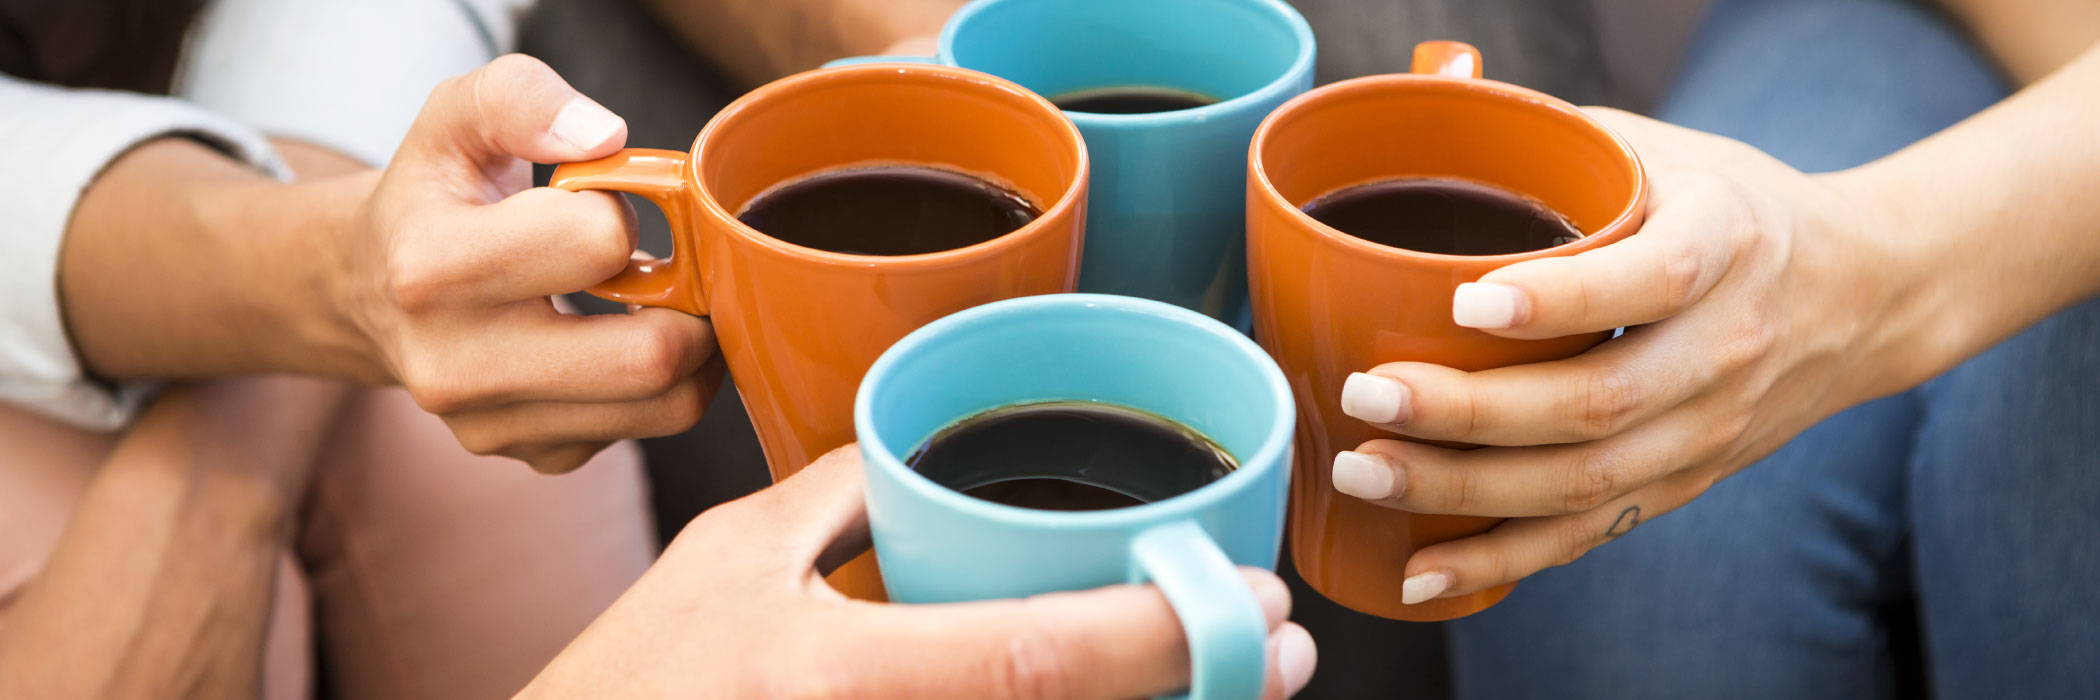 Four friends toasting mugs of coffee